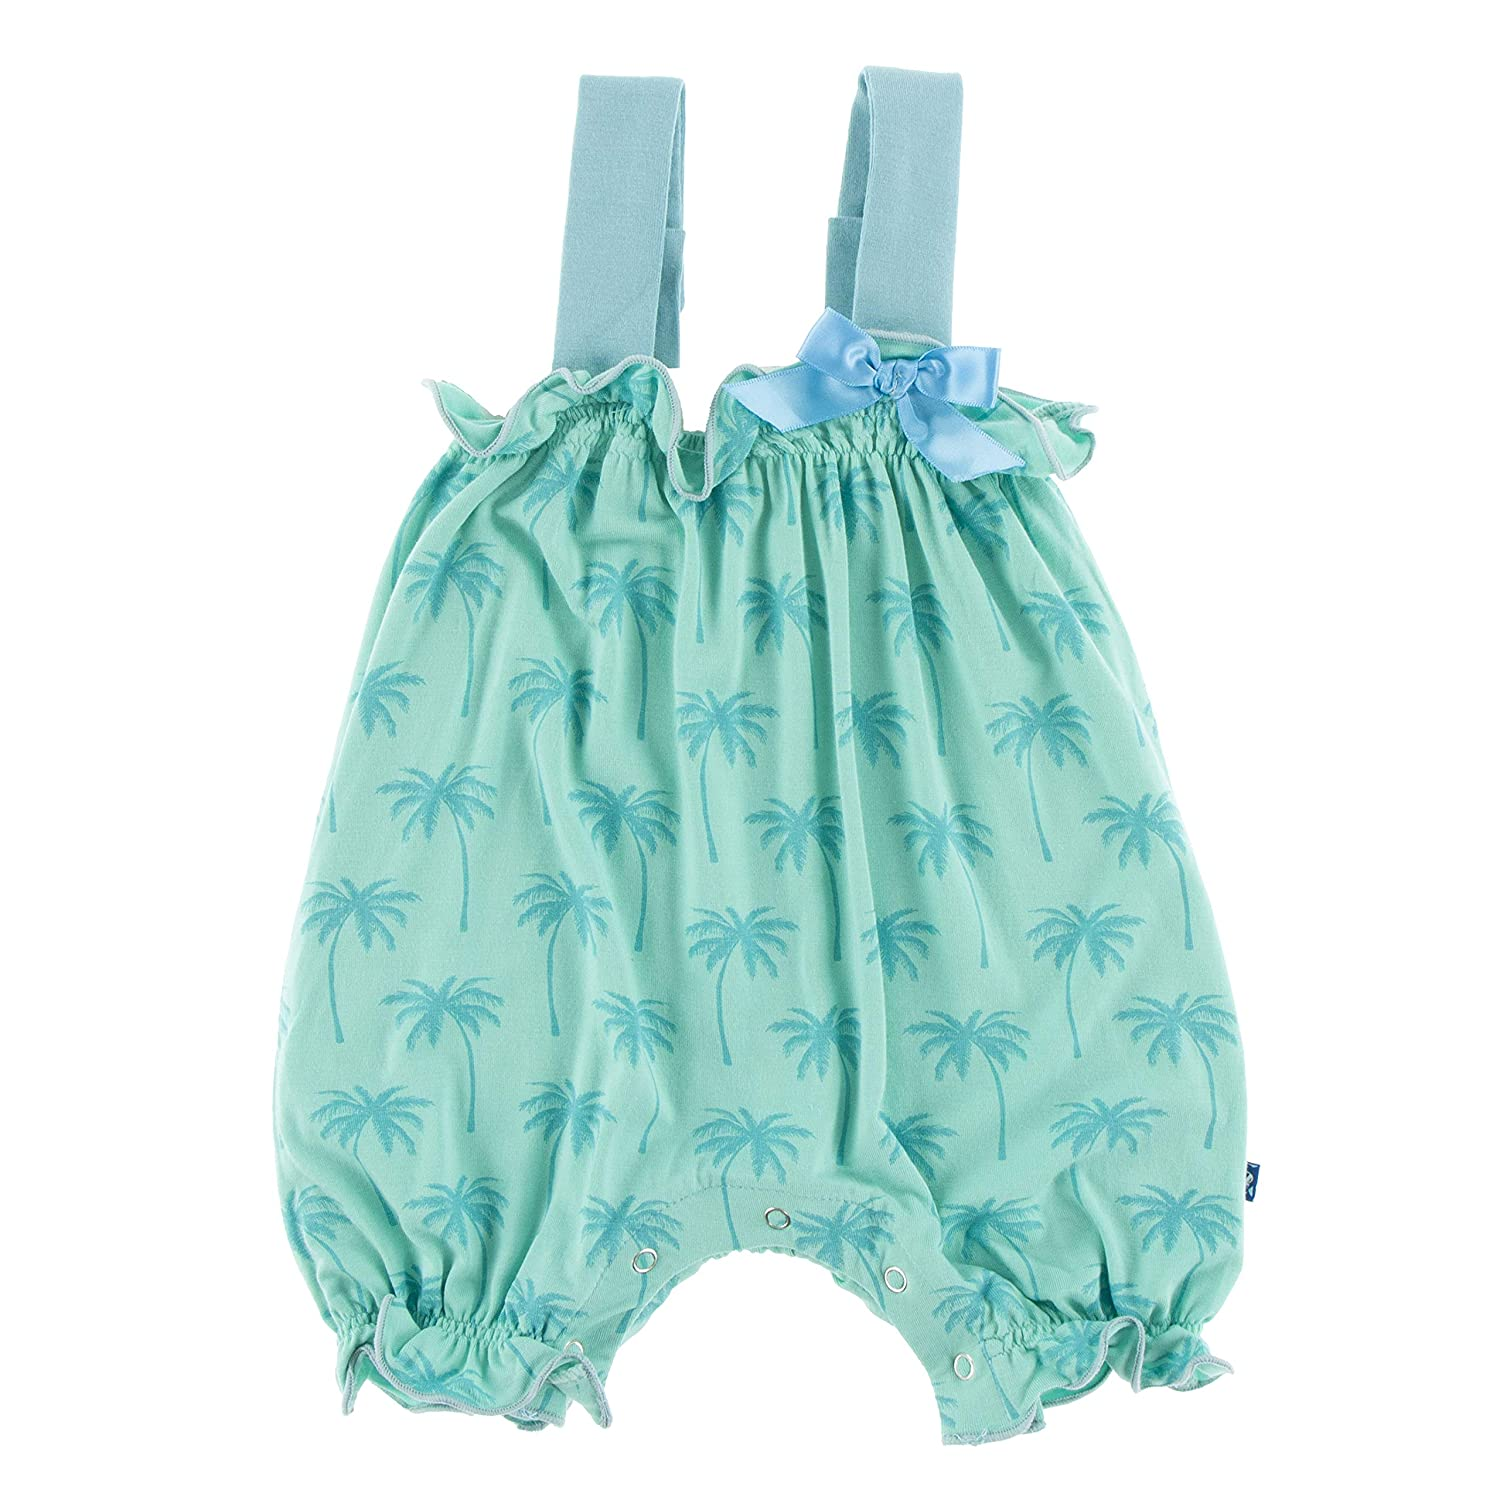 Kickee Pants Baby Girls Solid Gathered Romper with Contrast Bow Prd-kpgbr98-ldr